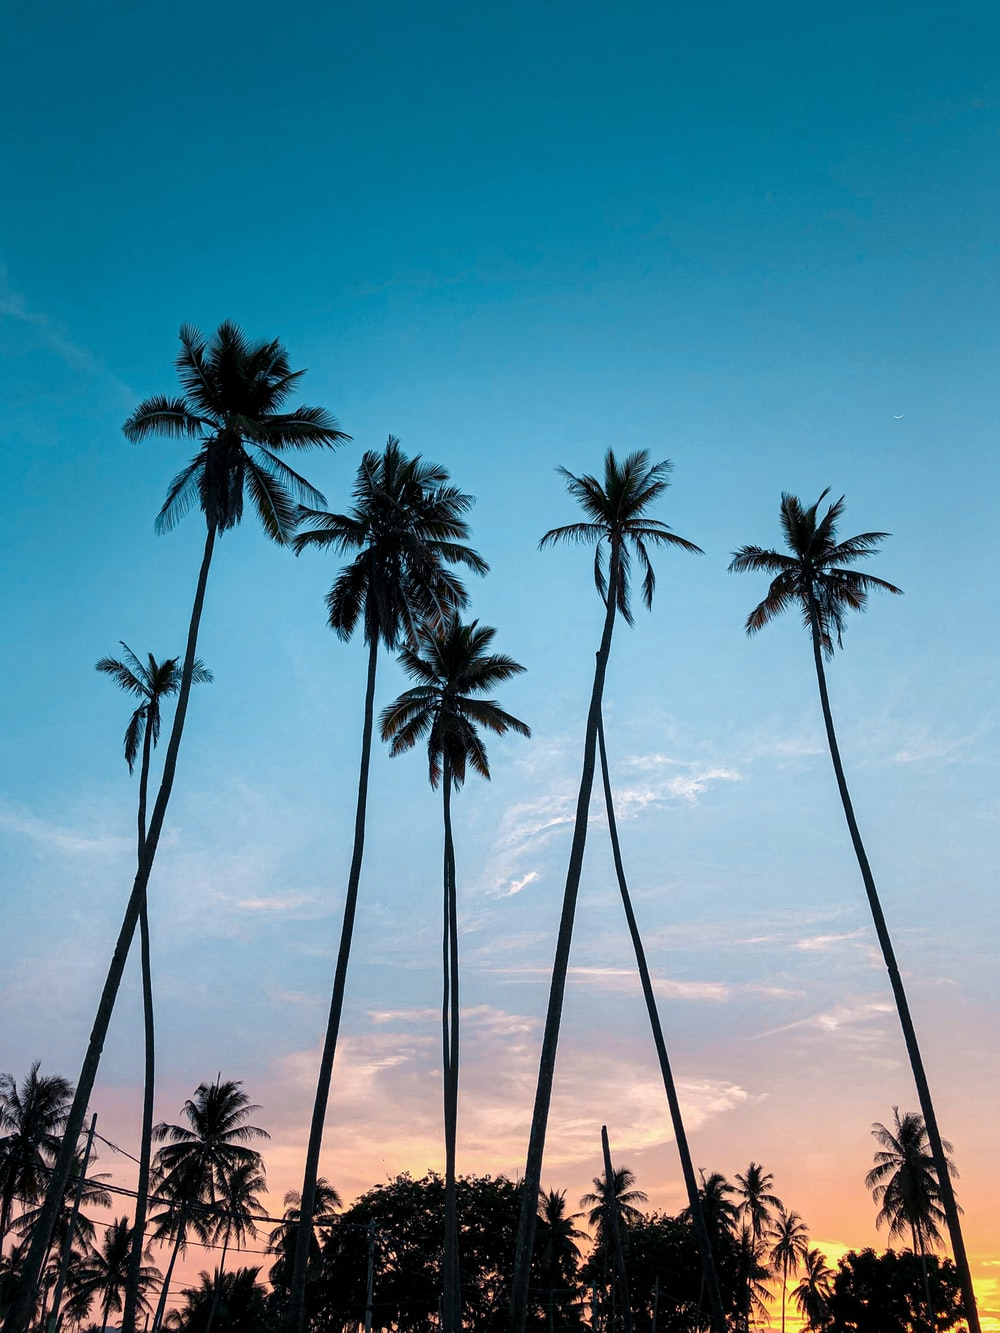 coconut palm trees under blue sky during daytime